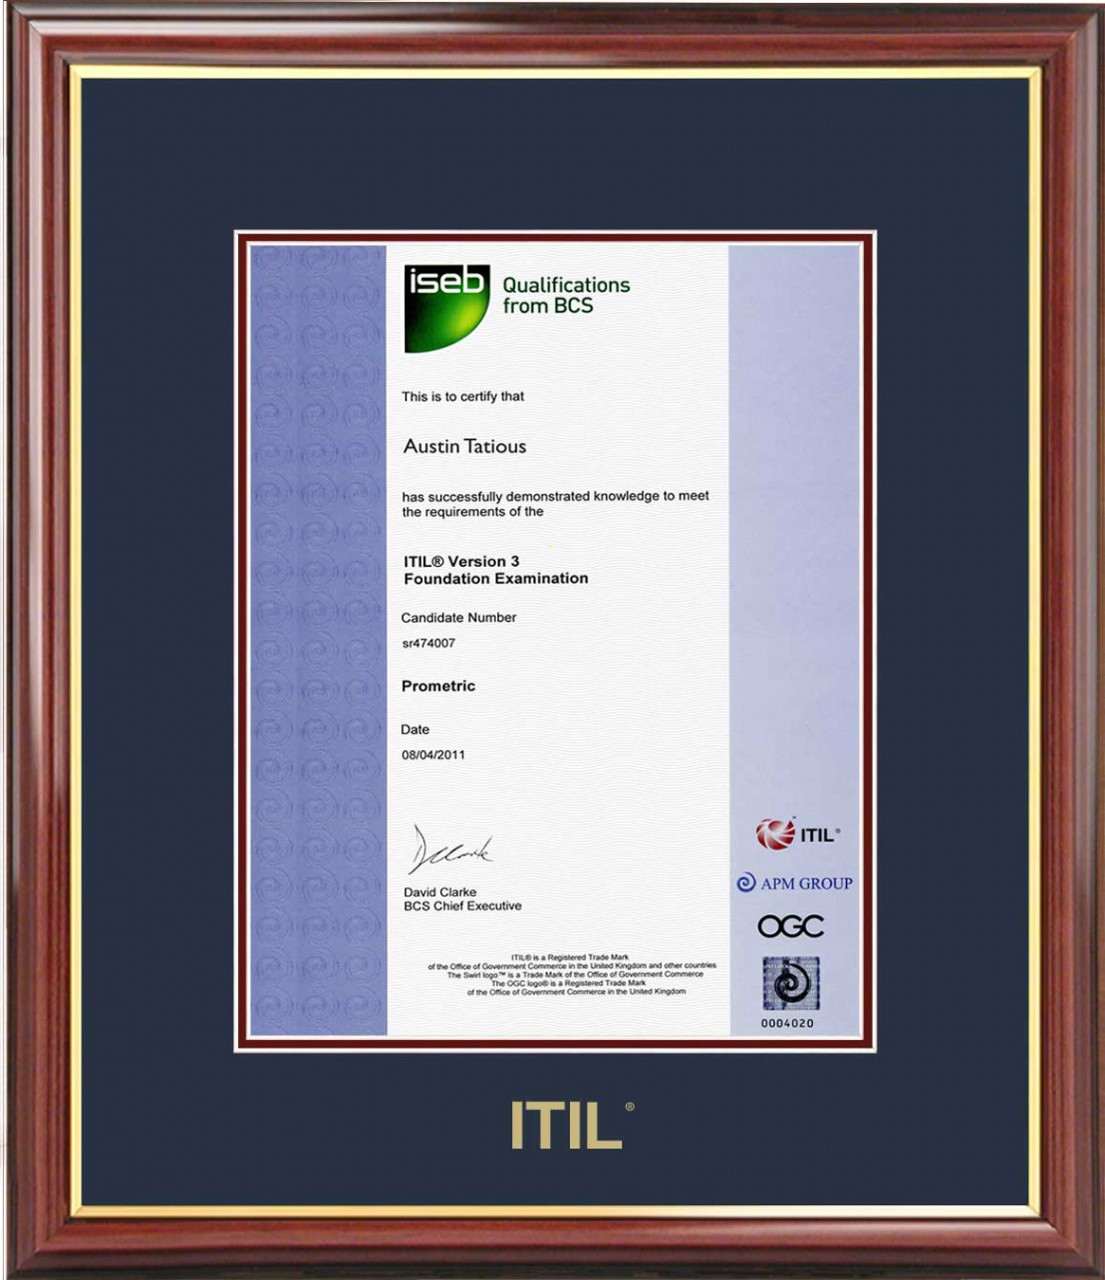 Itil Certificate Frame Mahogany With Navy Mat